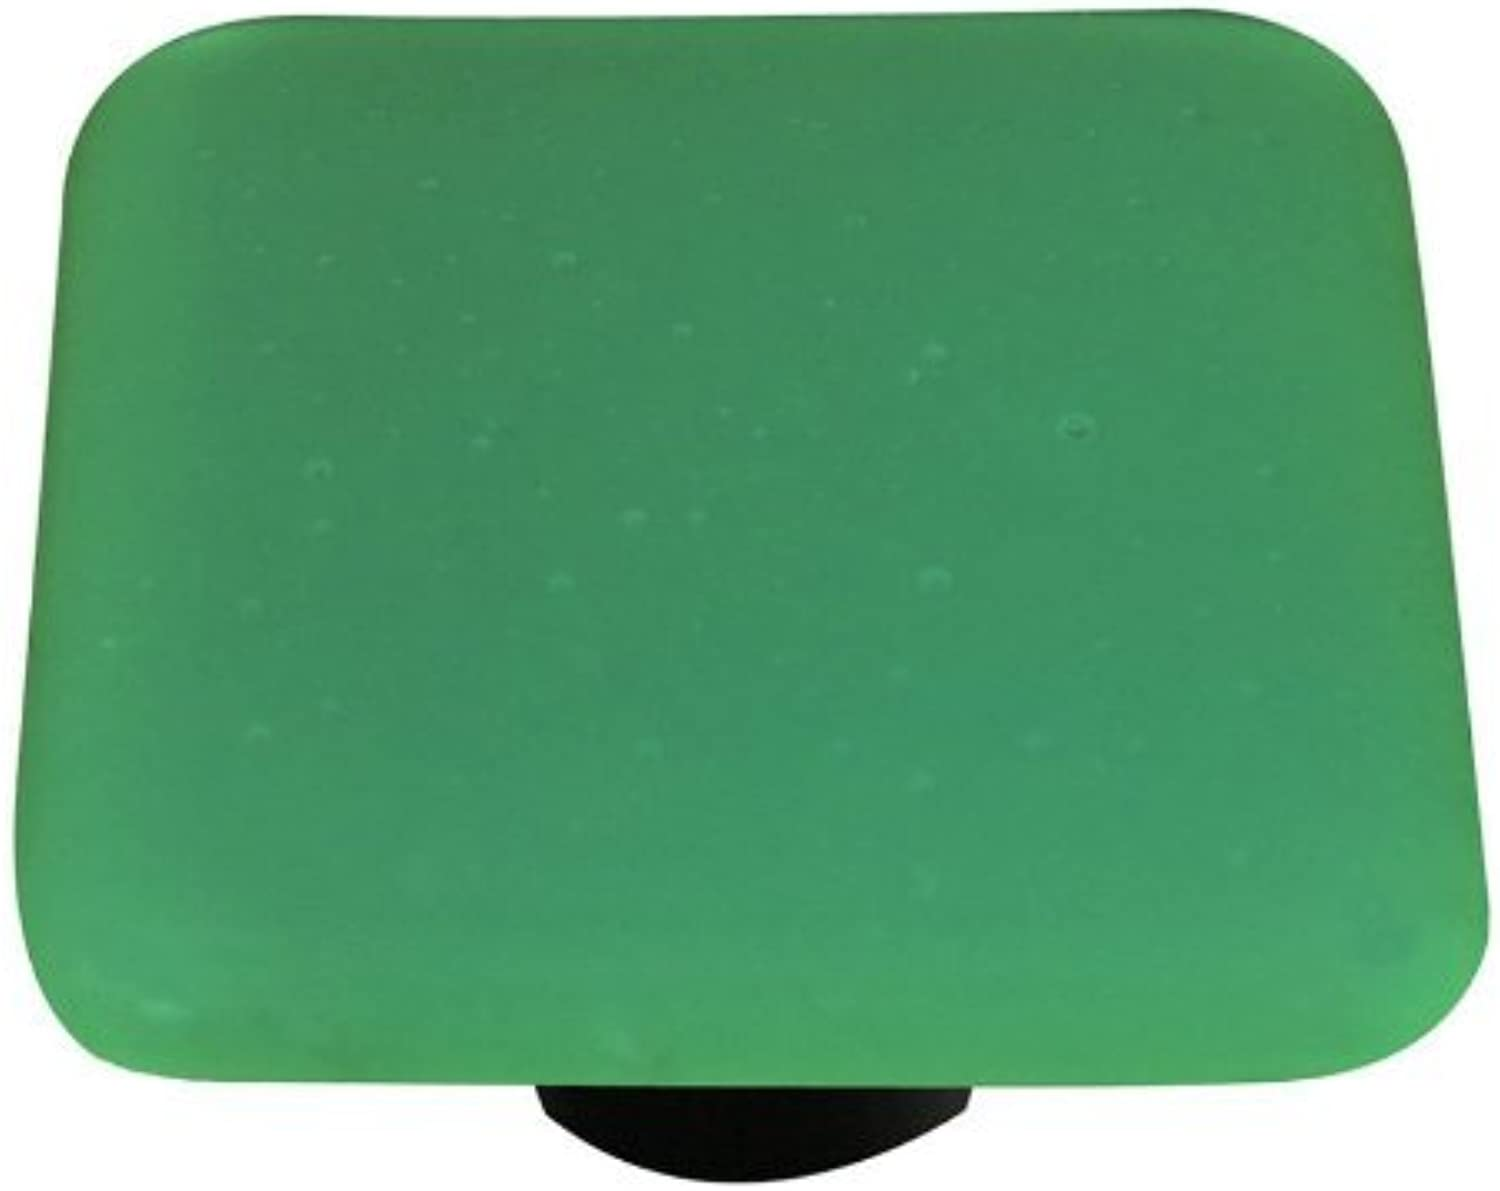 Hot Knobs HK9053-KA Opaline Jade Green Square Glass Cabinet Knob - Aluminum Post